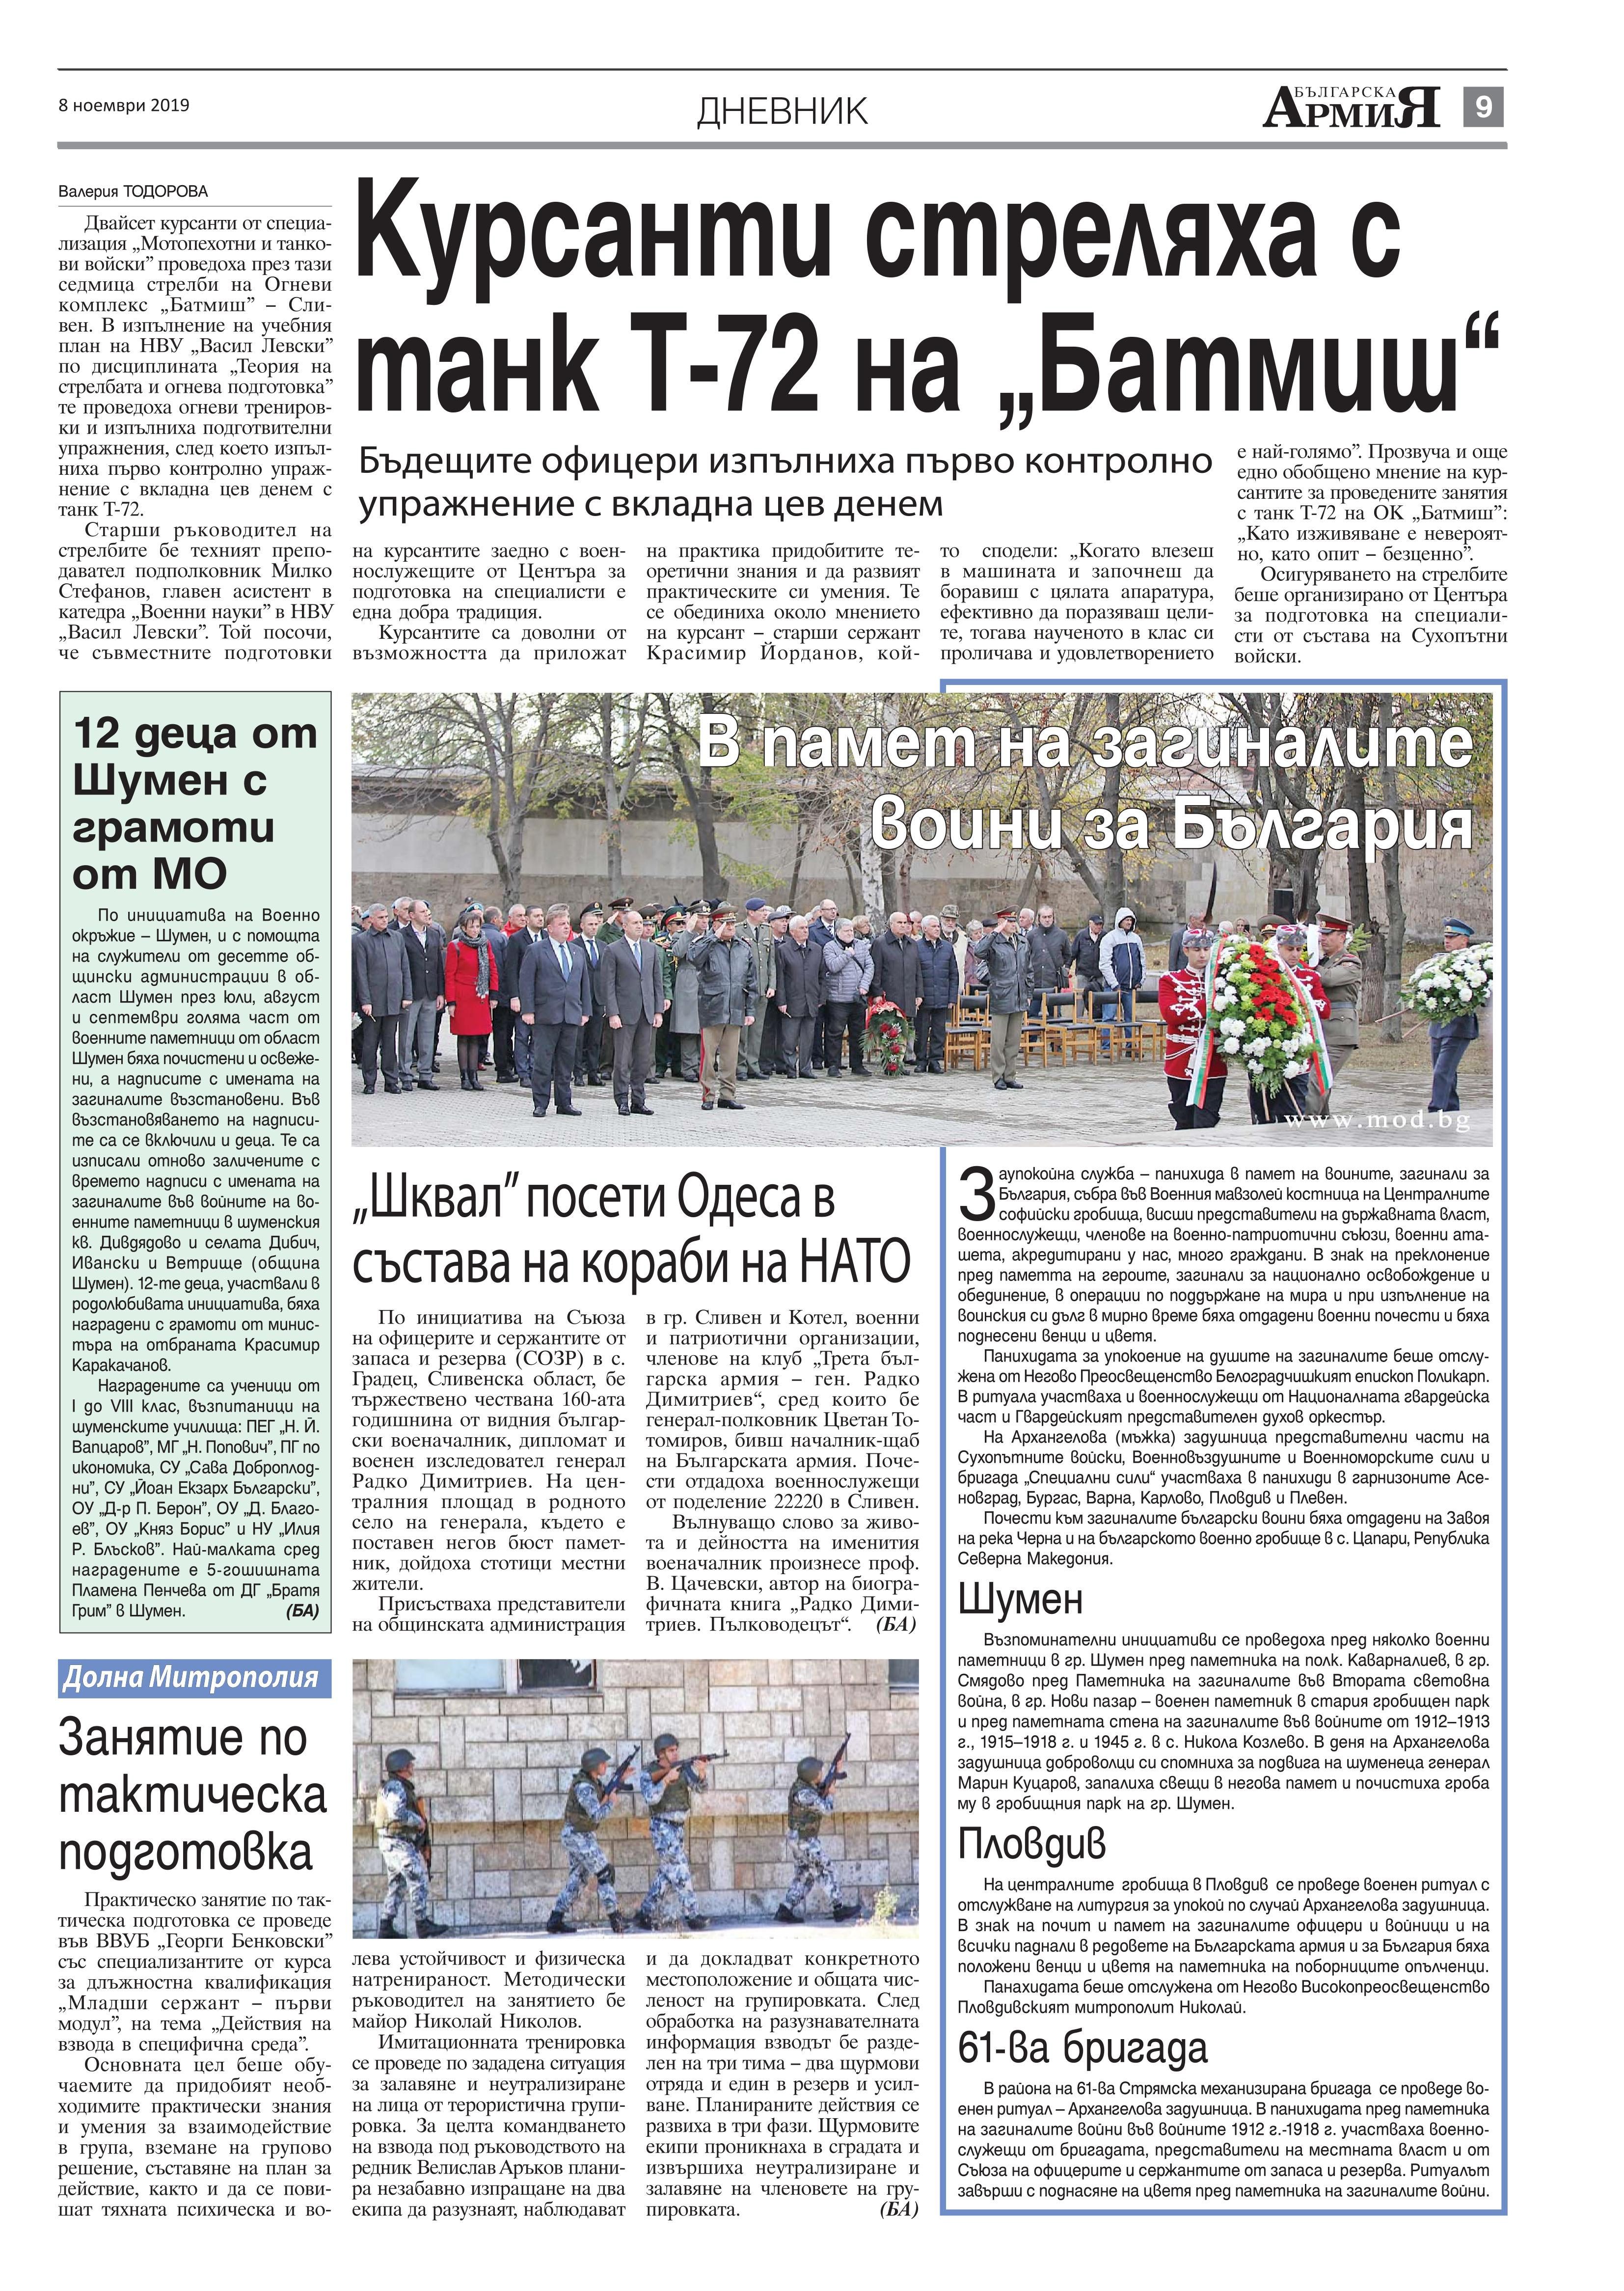 https://www.armymedia.bg/wp-content/uploads/2015/06/09.page1_-113.jpg